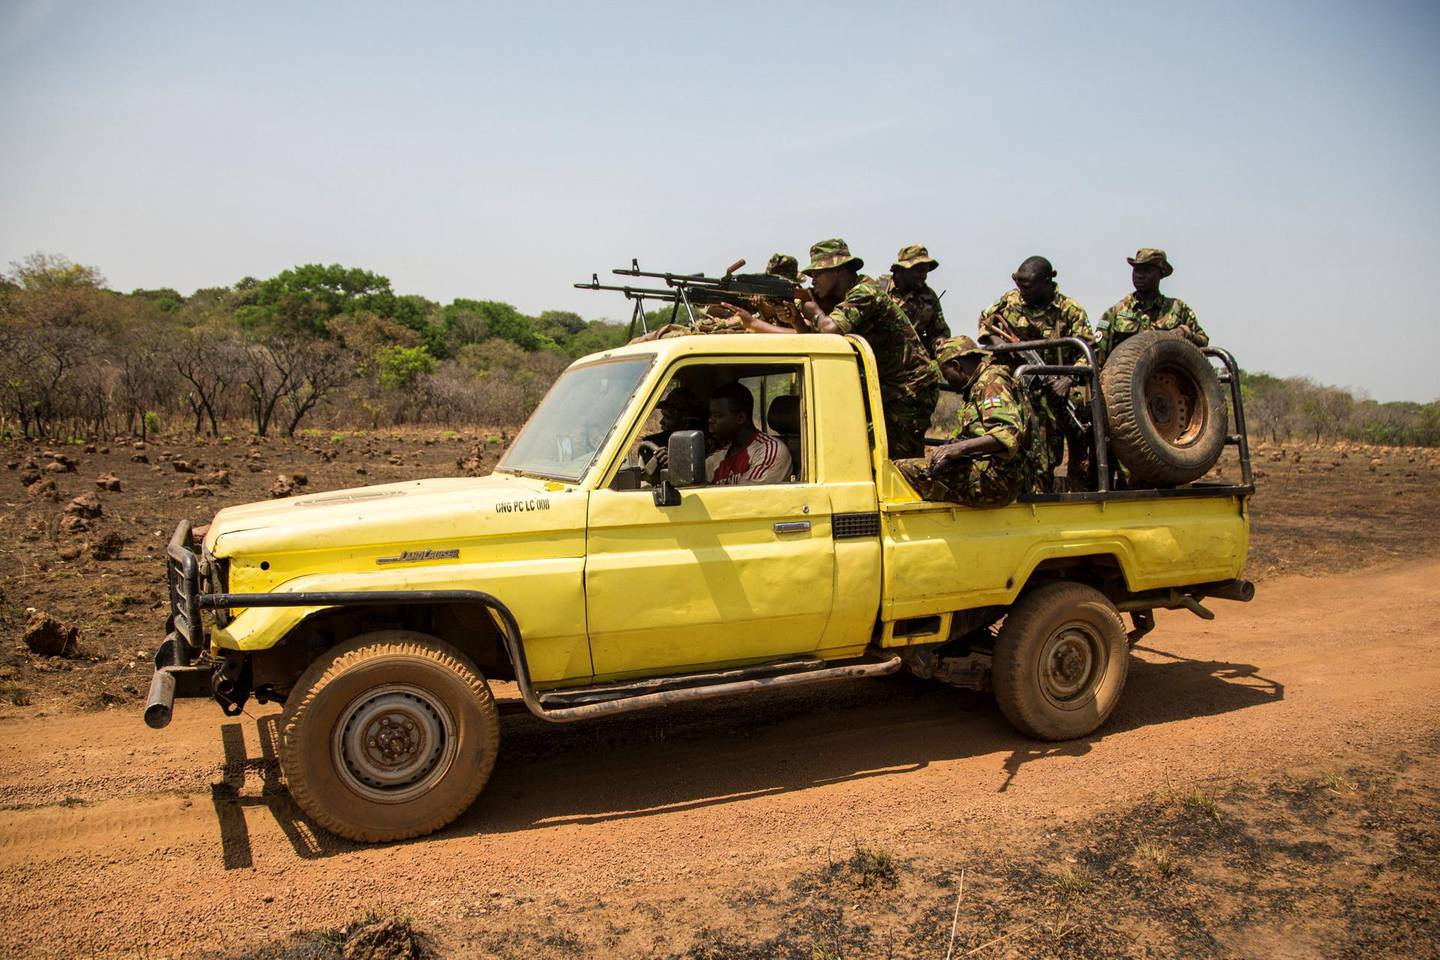 """Rangers head back to base from the shooting range. In the words of Stefan Maritz, a South African and Chinko's acting assistant law enforcement manager: """"Our mission is to fight the wrong. In Chinko, there is authority. There are consequences...Once accountability falls away, nothing works anymore."""""""